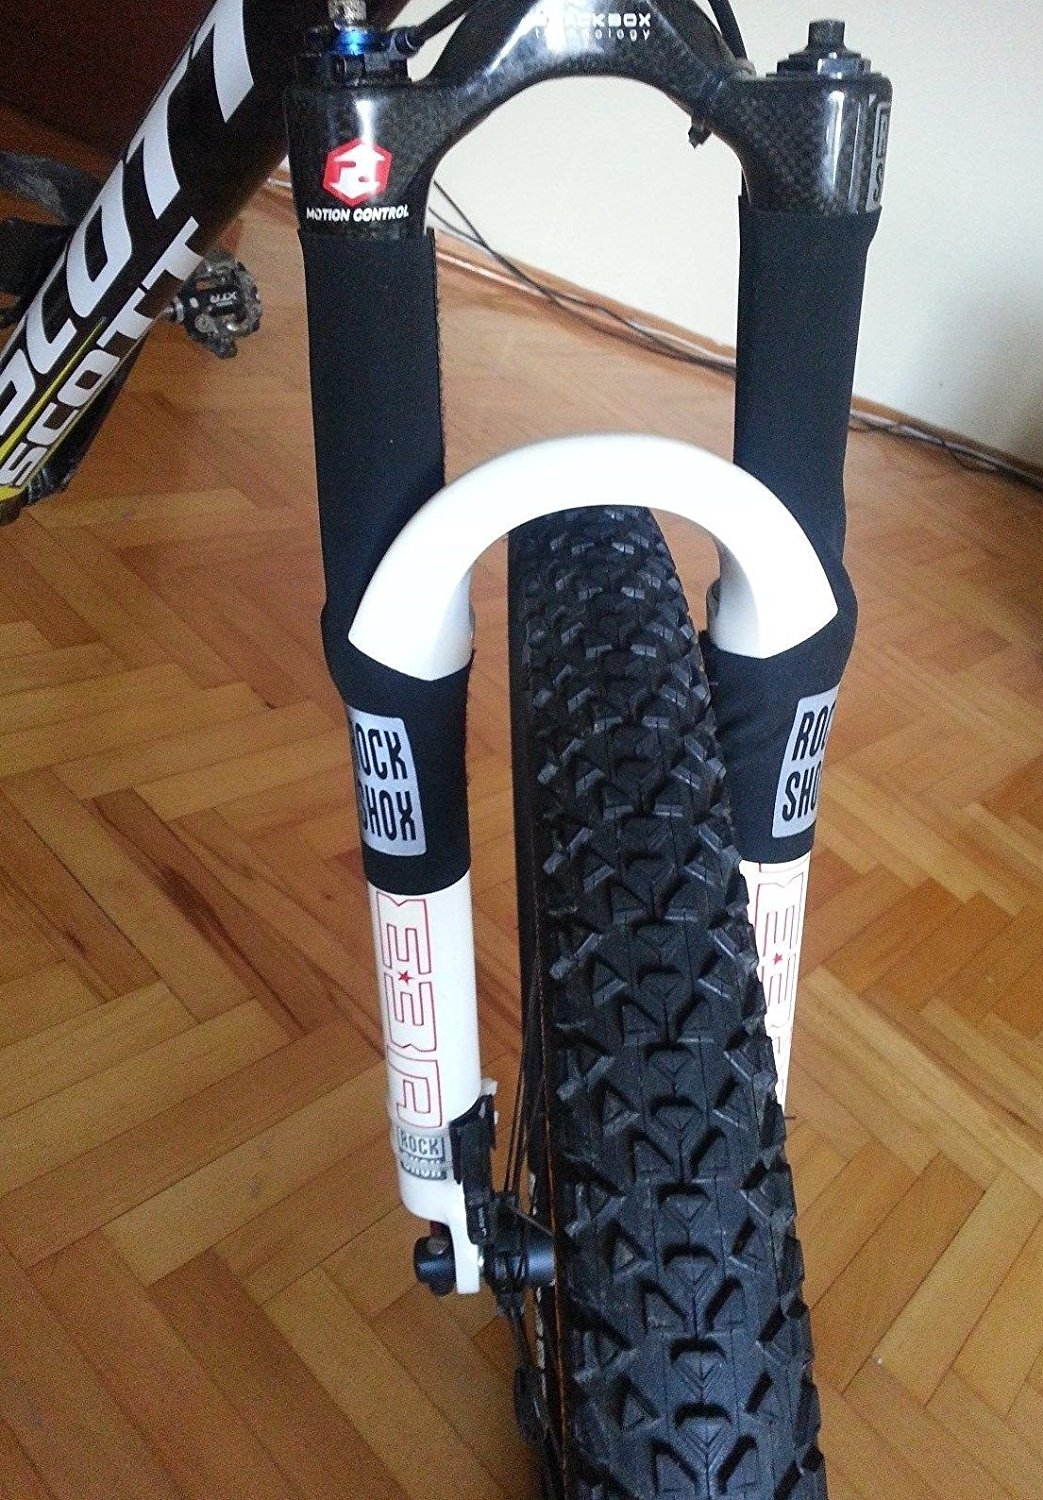 Rock Shox Cycling Bicycle Bike MTB Front Fork Suspension Protector Pad Cover